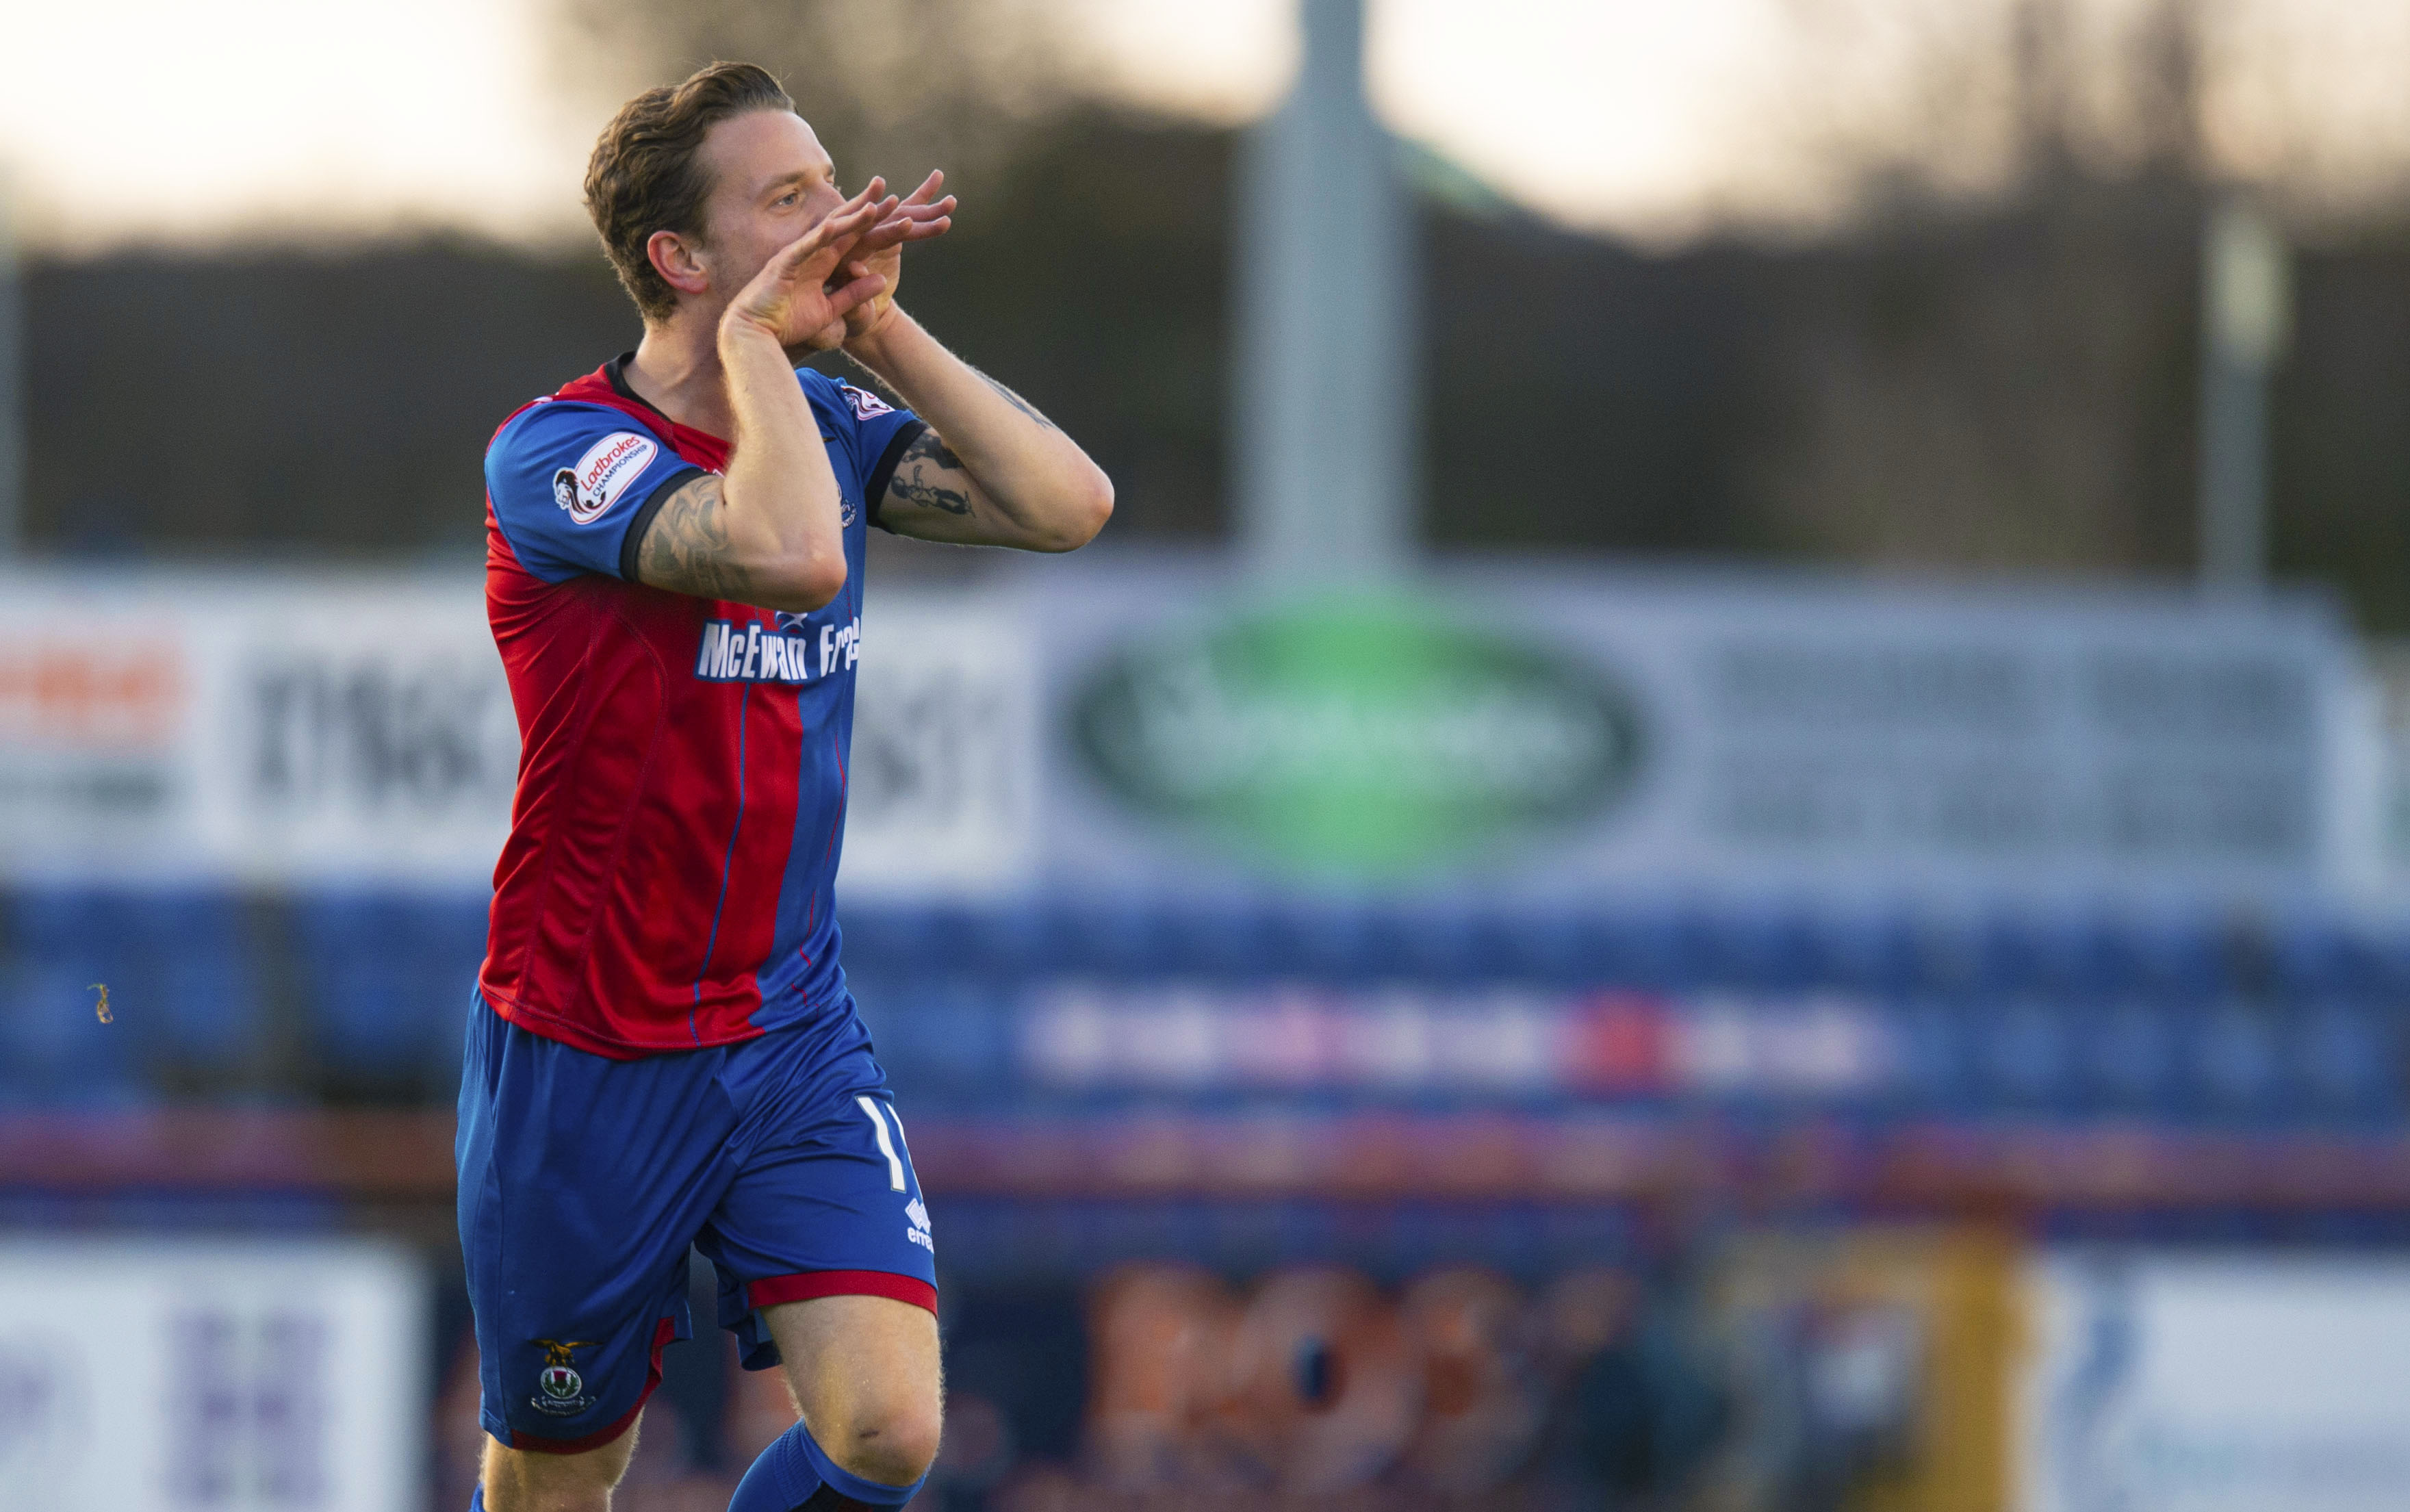 1/12/18 LADBROKES CHAMPIONSHIP INVERNESS CT v FALKIRK TULLOCH CALEDONIAN STADIUM - INVERNESS Inverness' Tom Walsh celebrates giving his side the lead.